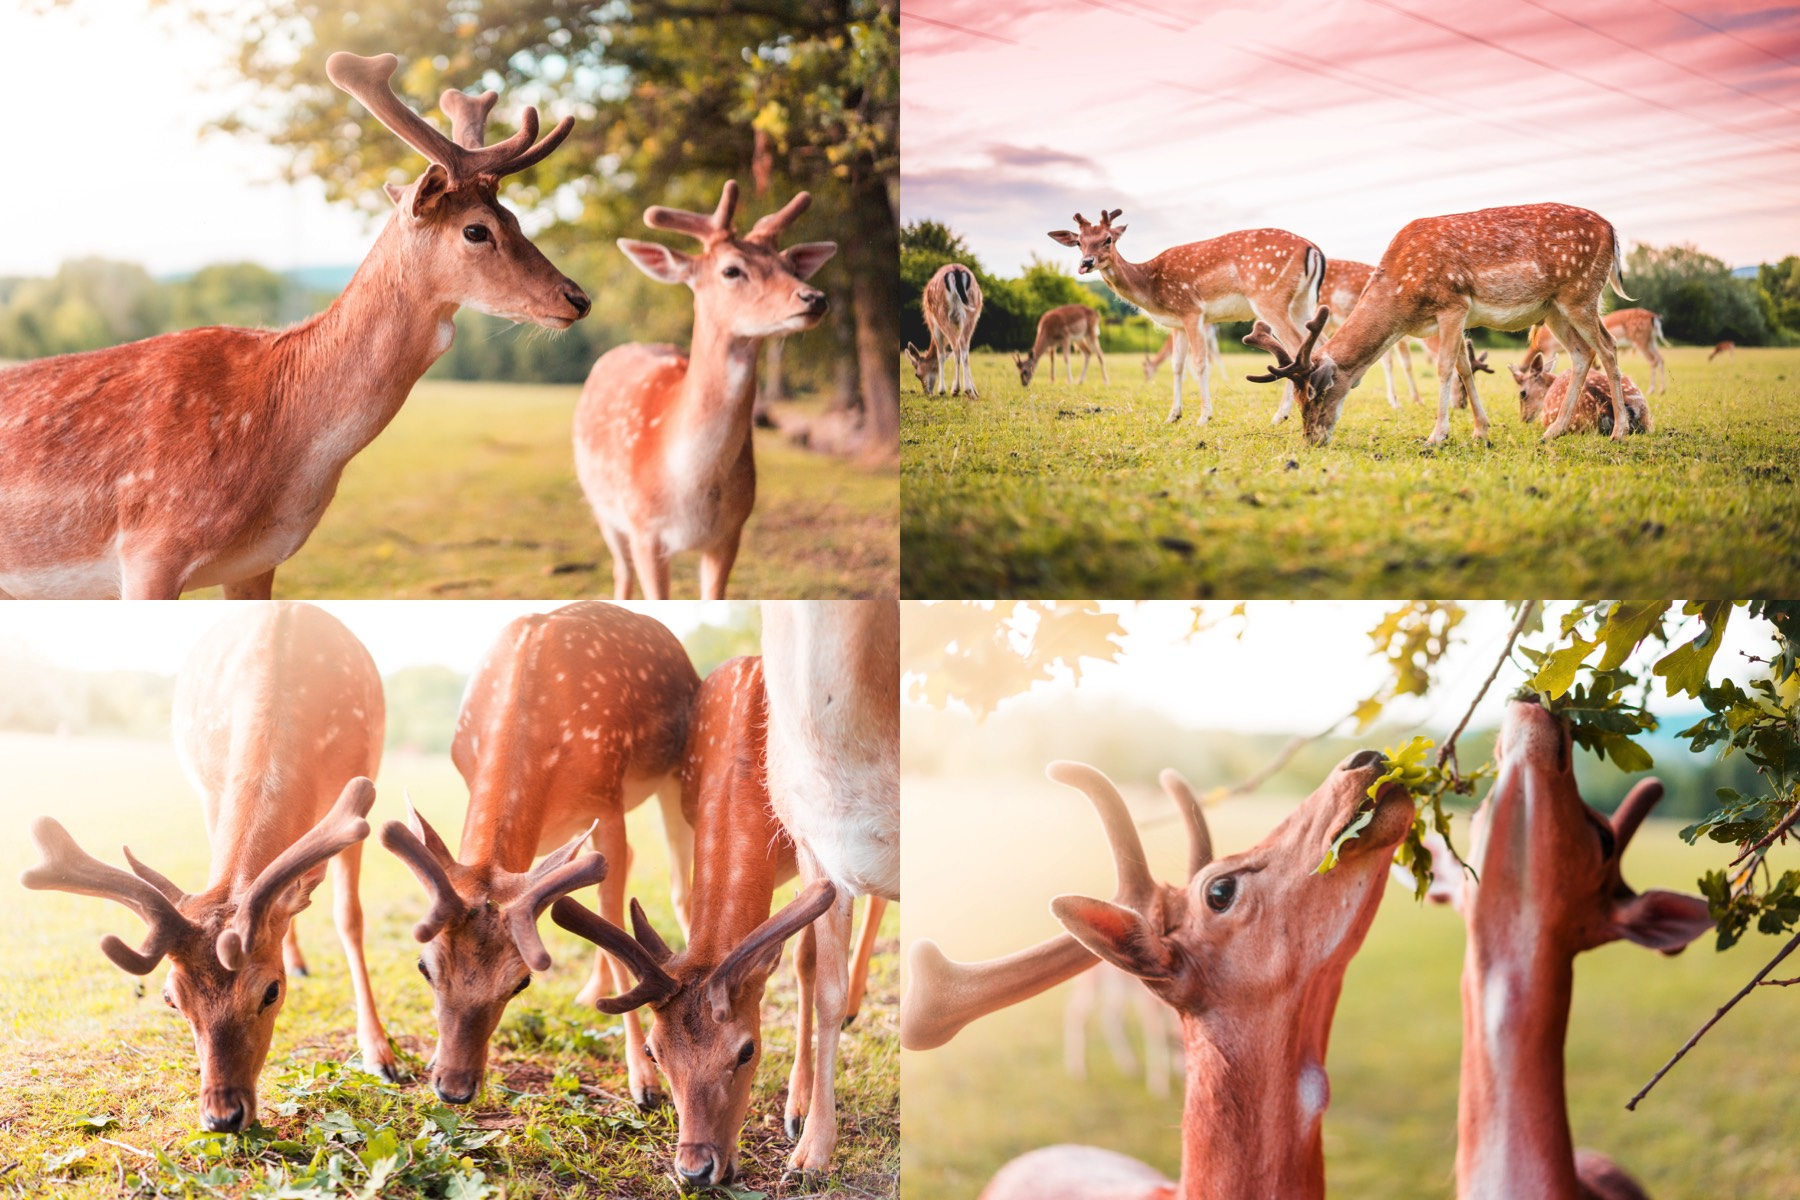 fellow deer preview 2